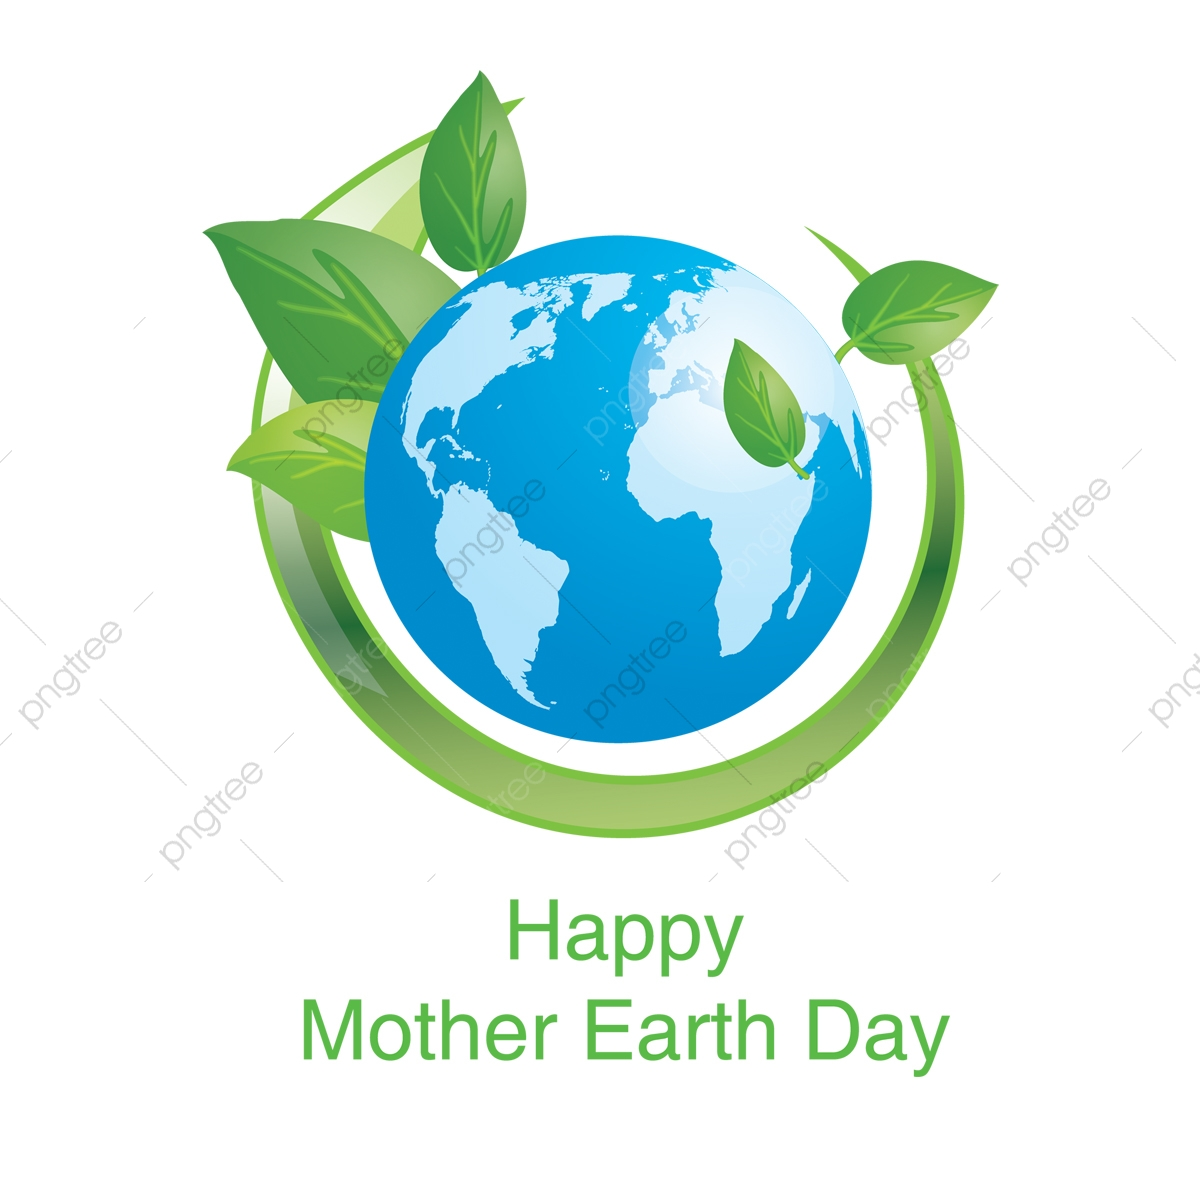 Happy Mother Earth Day, Mother Earth Day, Earth Care, Earth Day PNG.